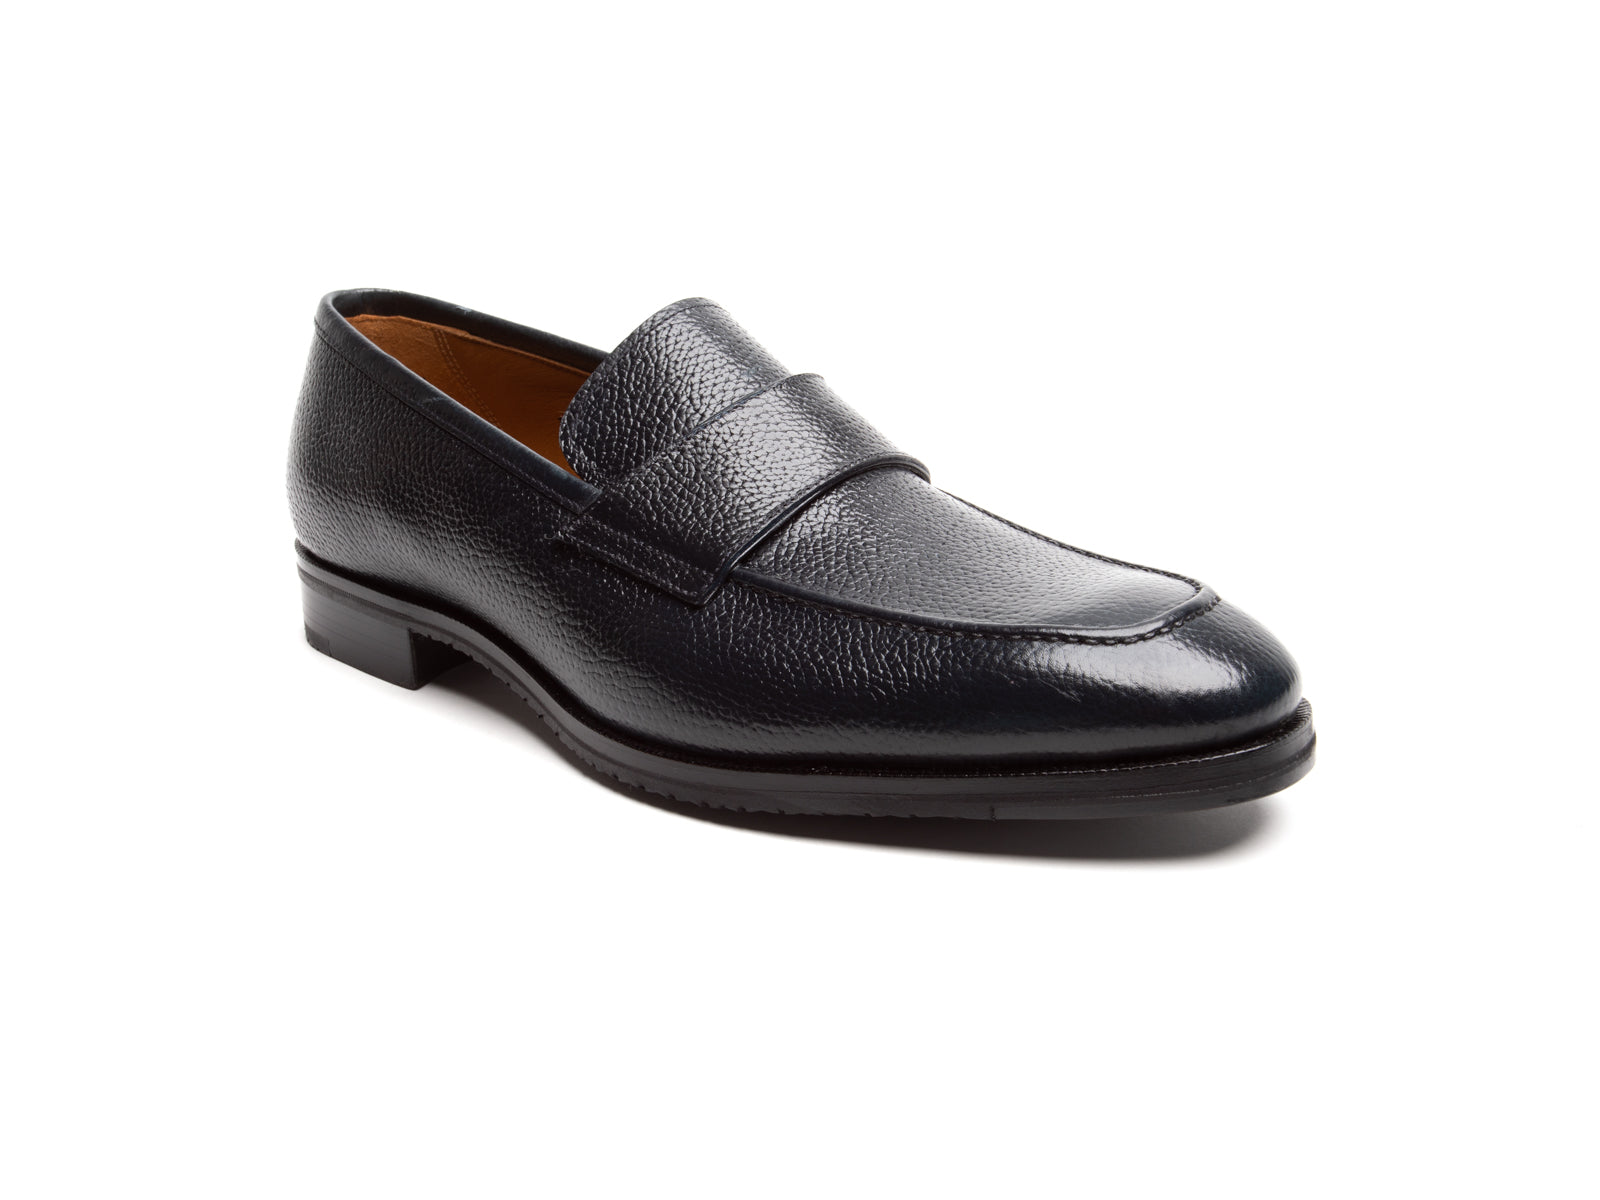 Dress Pebble Grained Blind Keeper Slip-On in Navy Calf